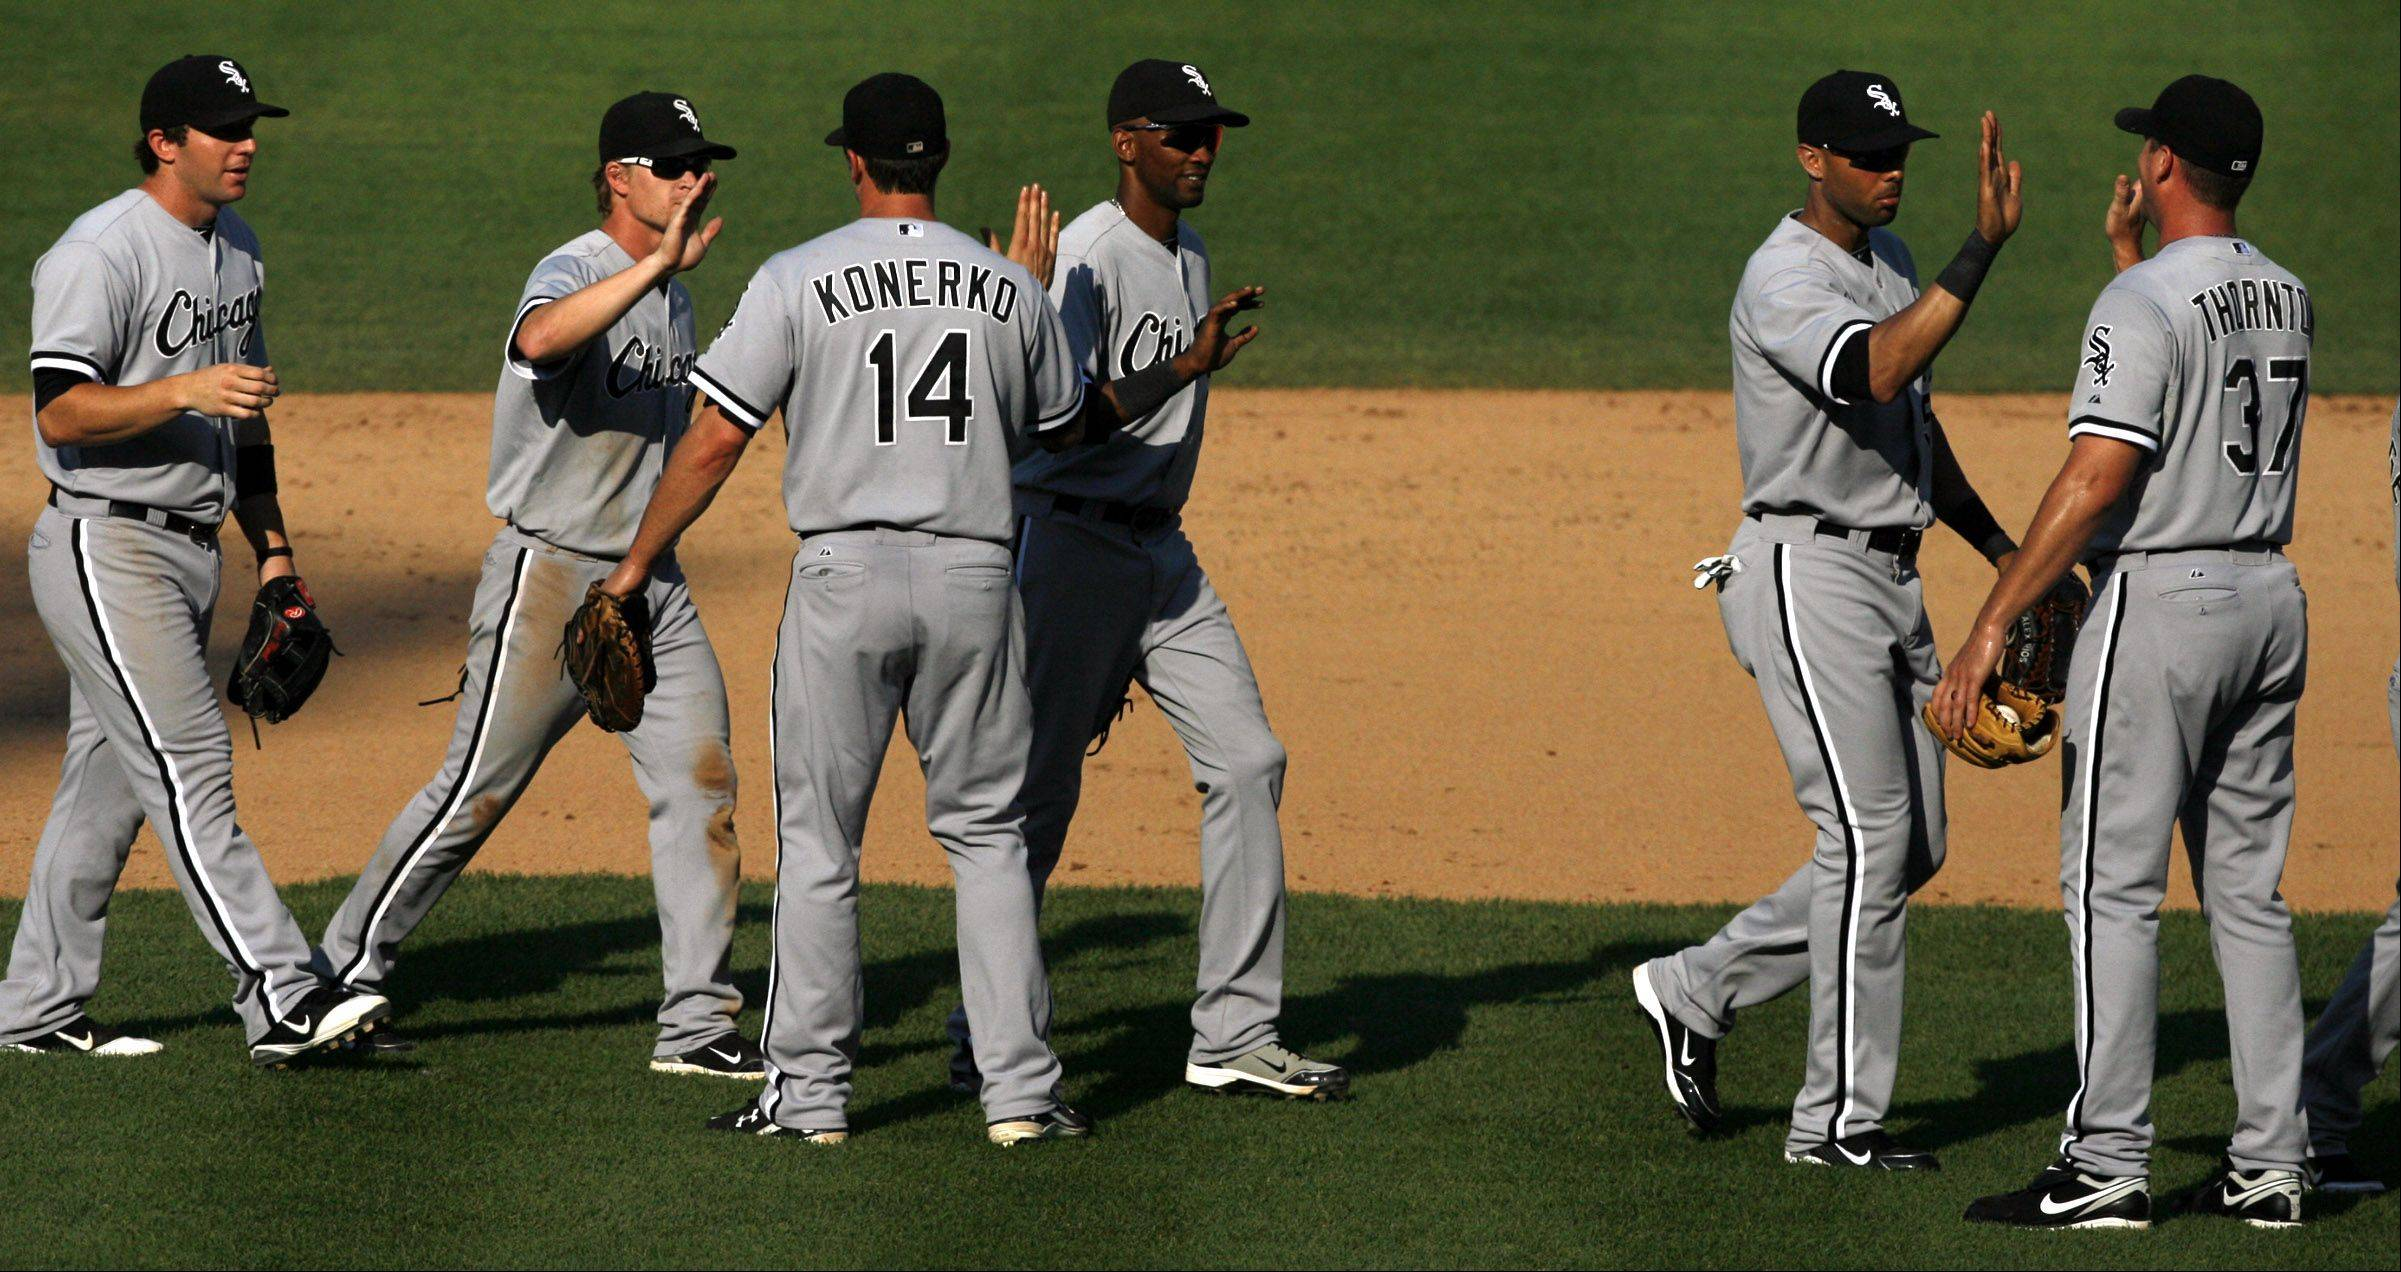 White Sox celebrate 1-0 win over the Cubs at Wrigley Field on Saturday.